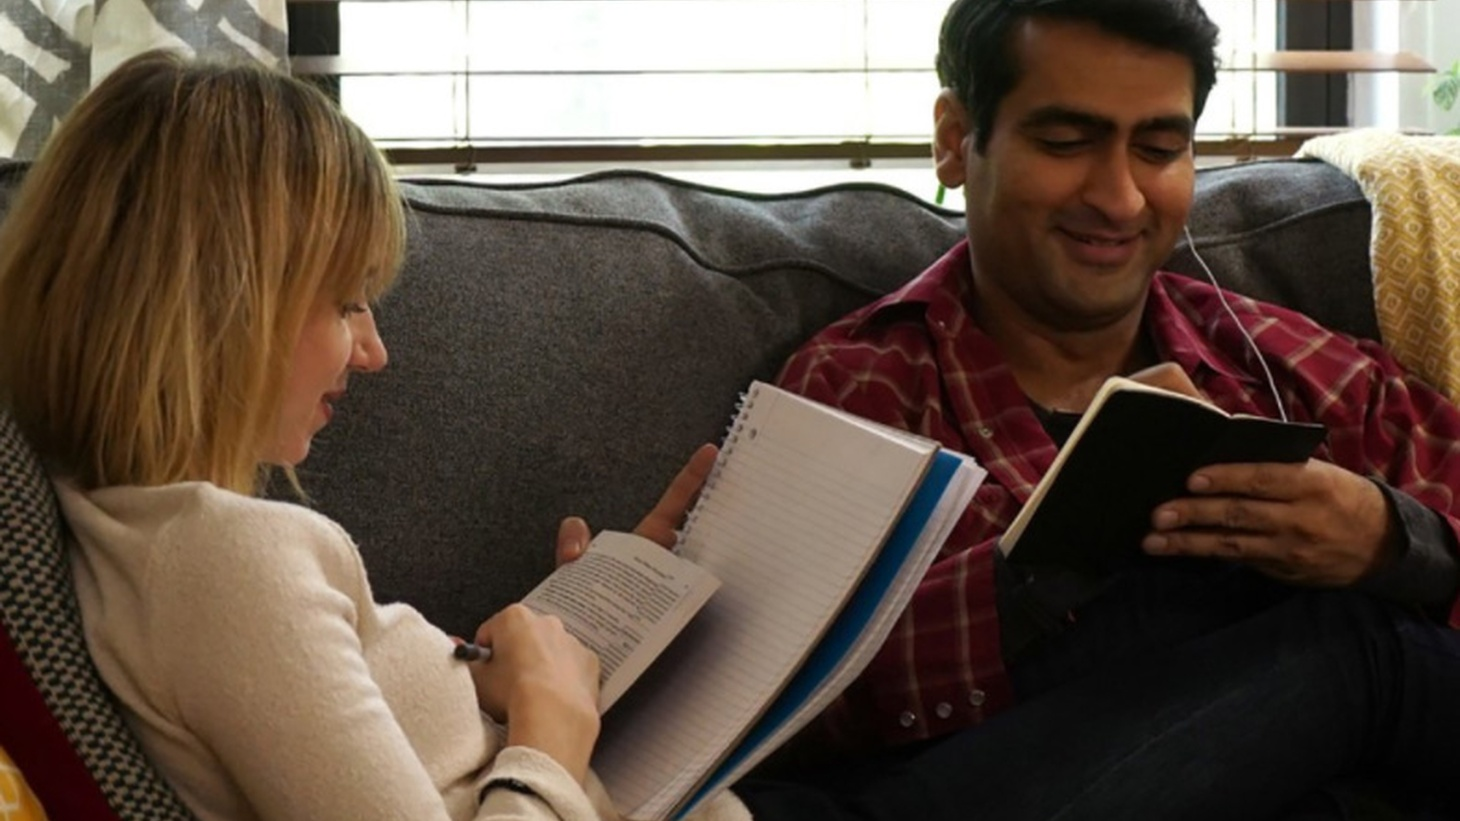 Maybe the title of The Big Sick could be improved, but everything else conspires to make this romantic comedy a cockeyed classic. It's hilariously hyperverbal, yet wonderfully heartfelt.